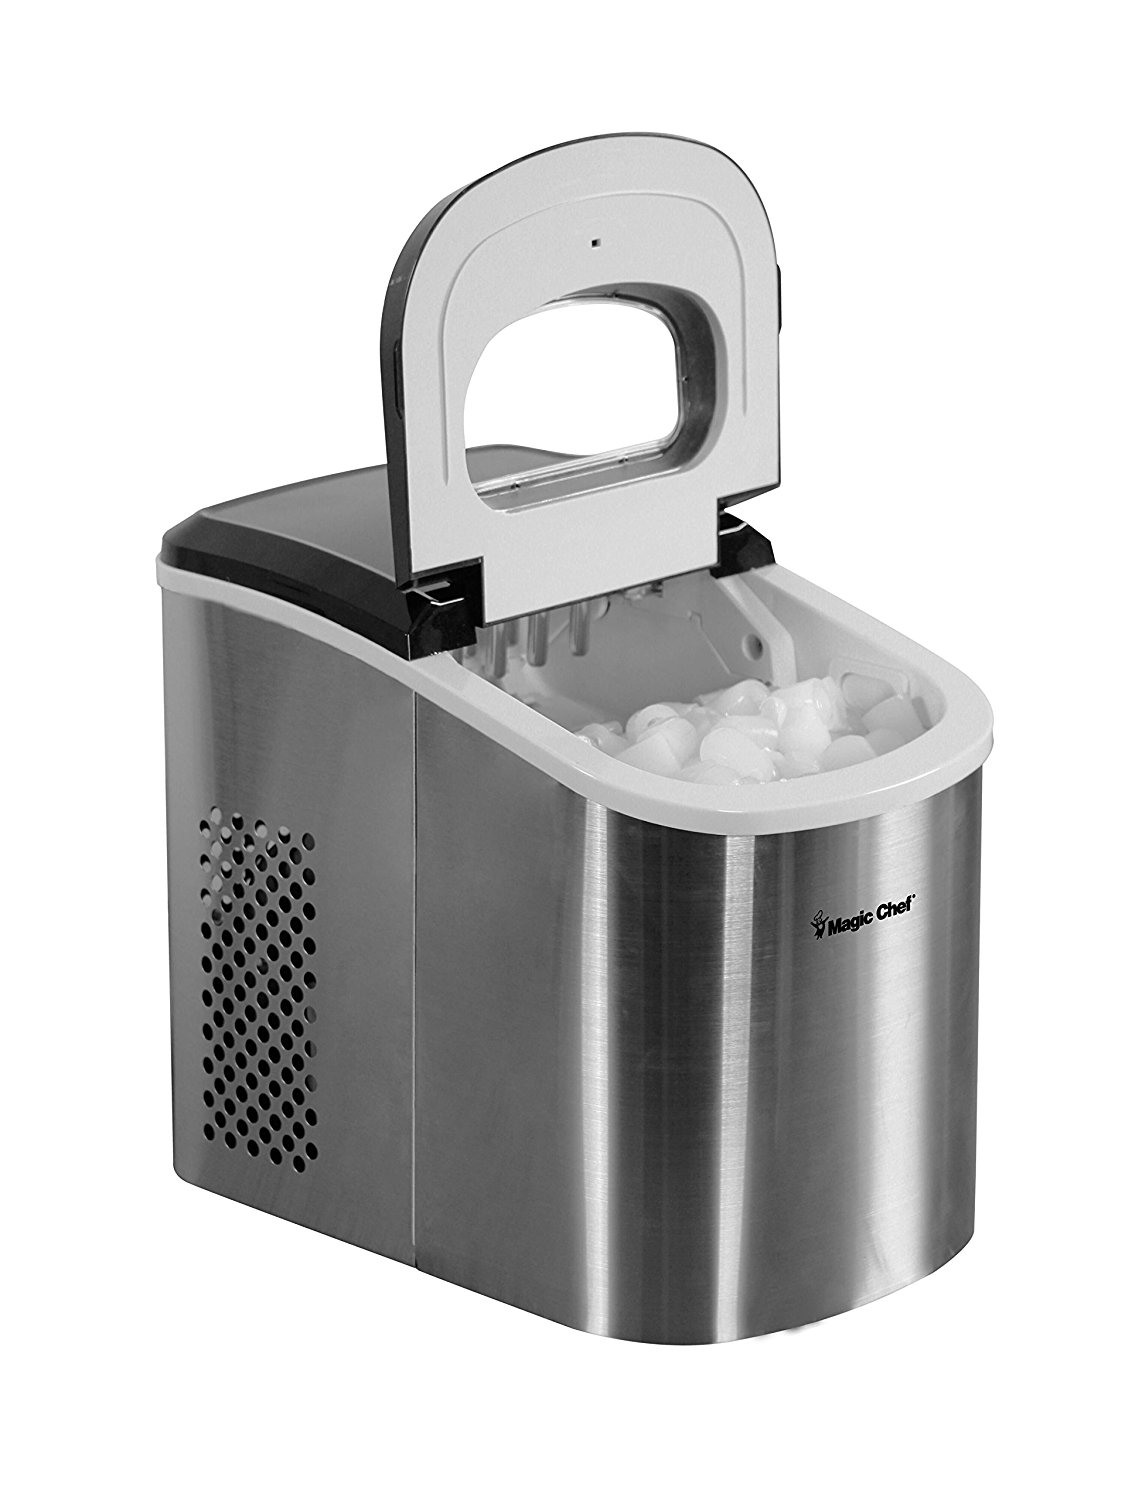 Best portable ice maker consumer reports